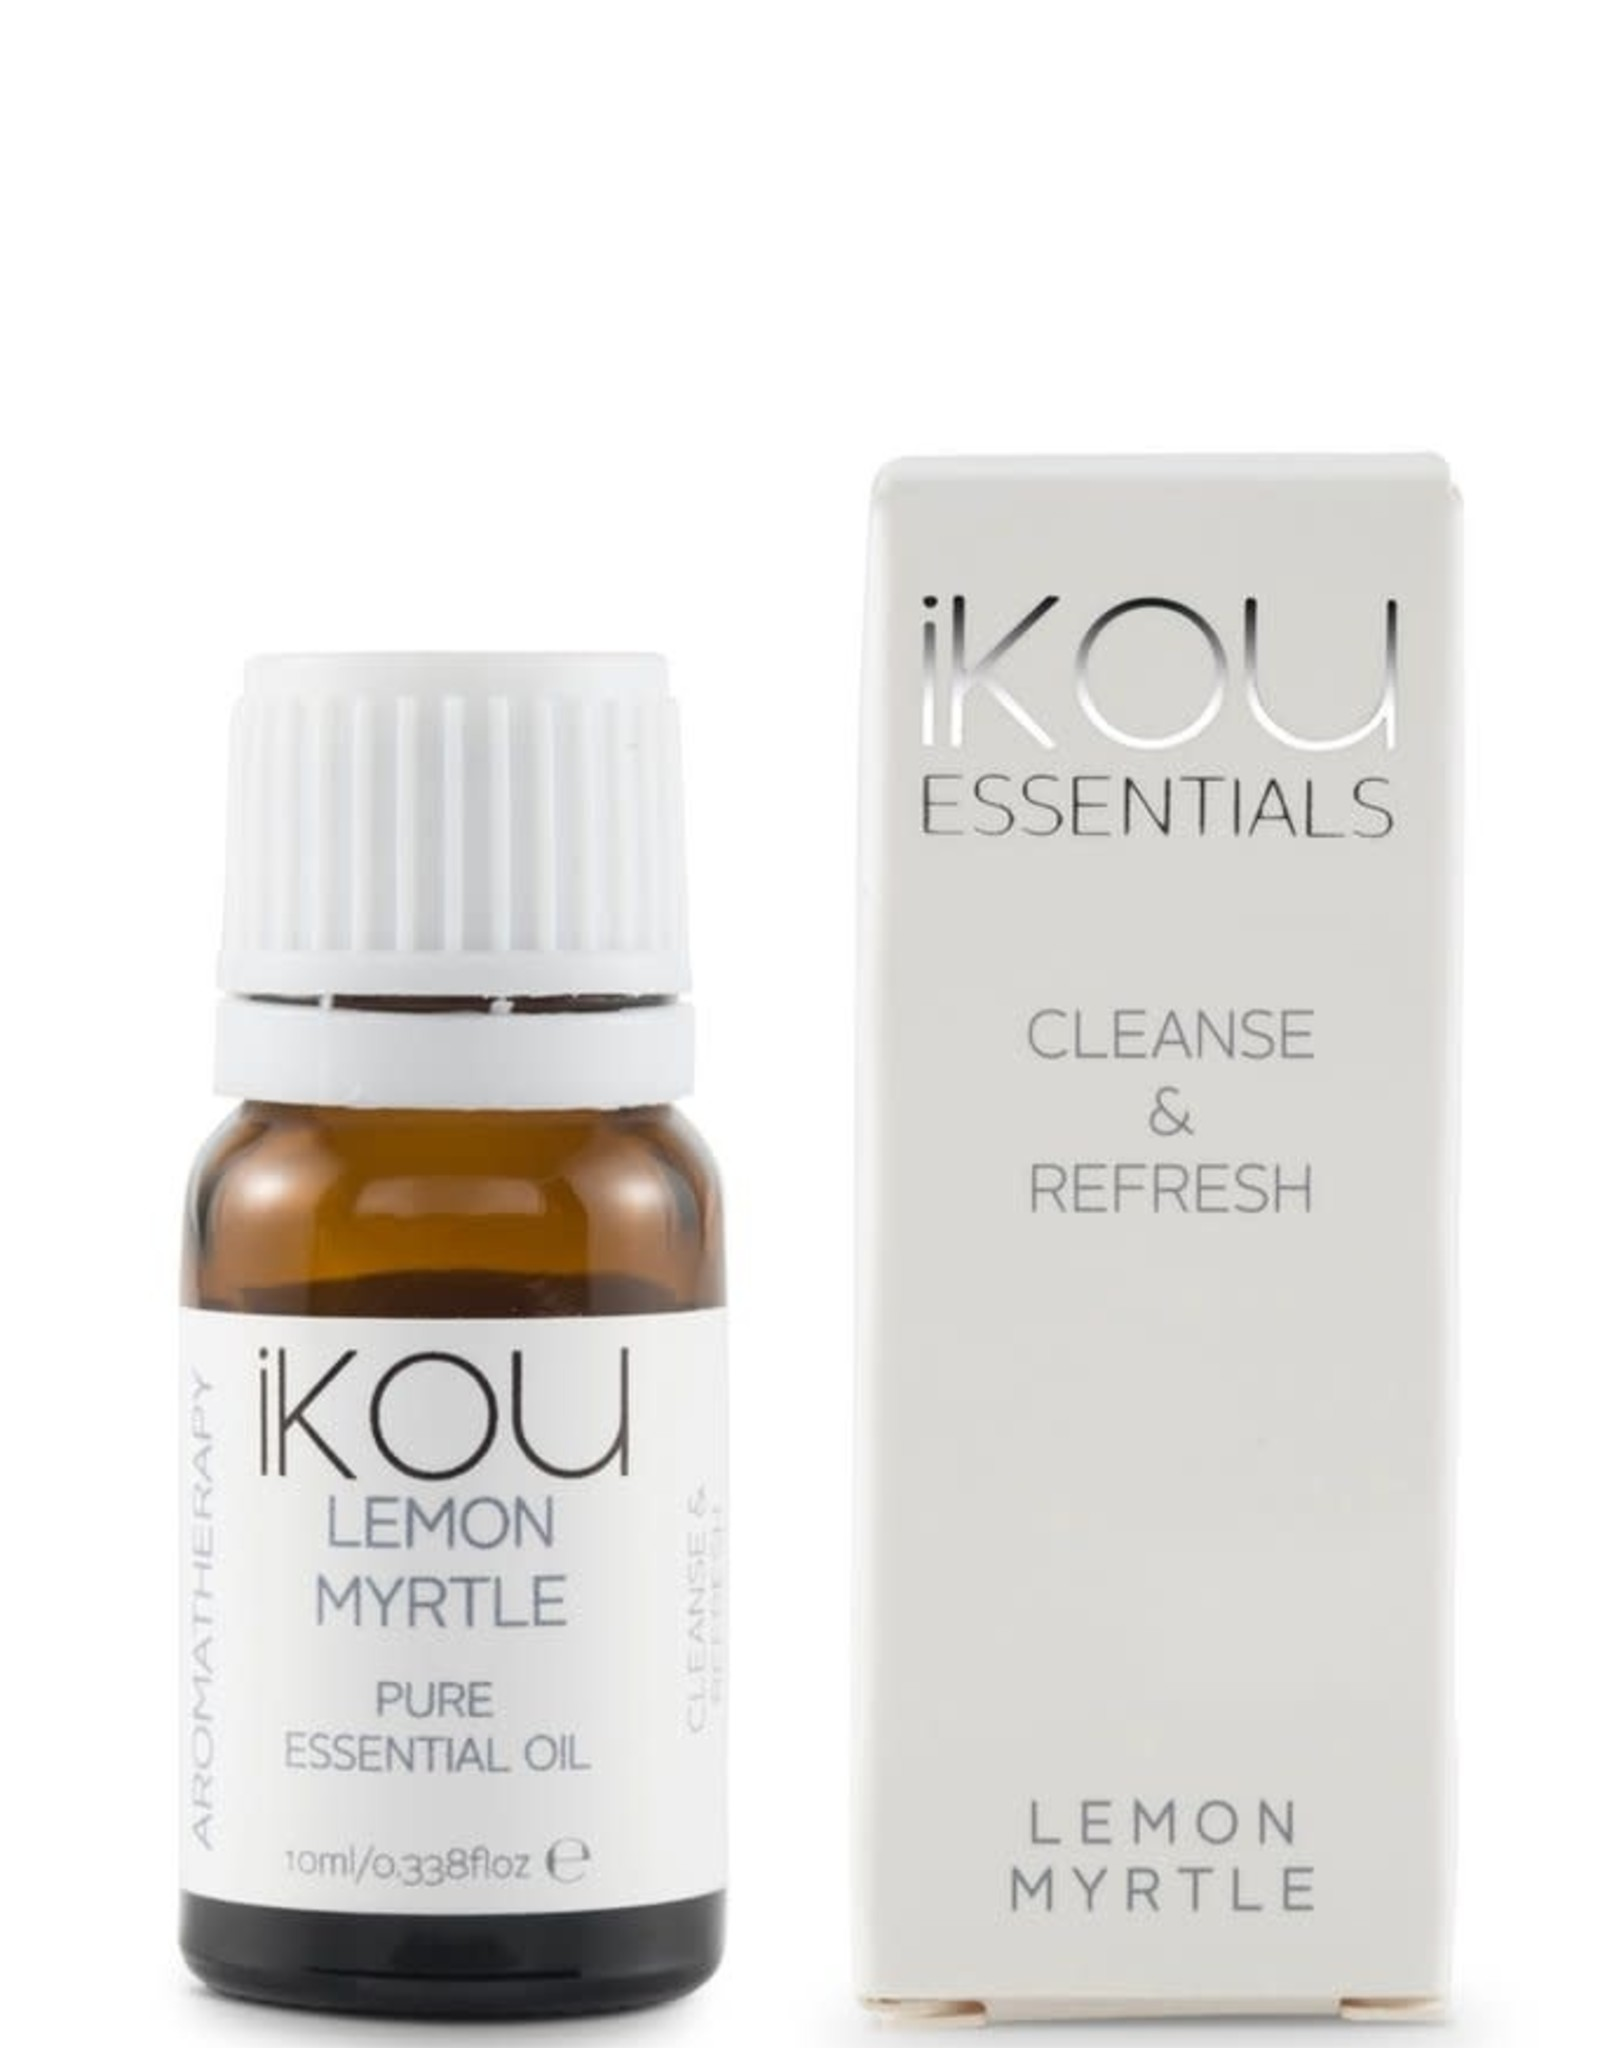 IKOU LEMON MYRTLE Essential Oils